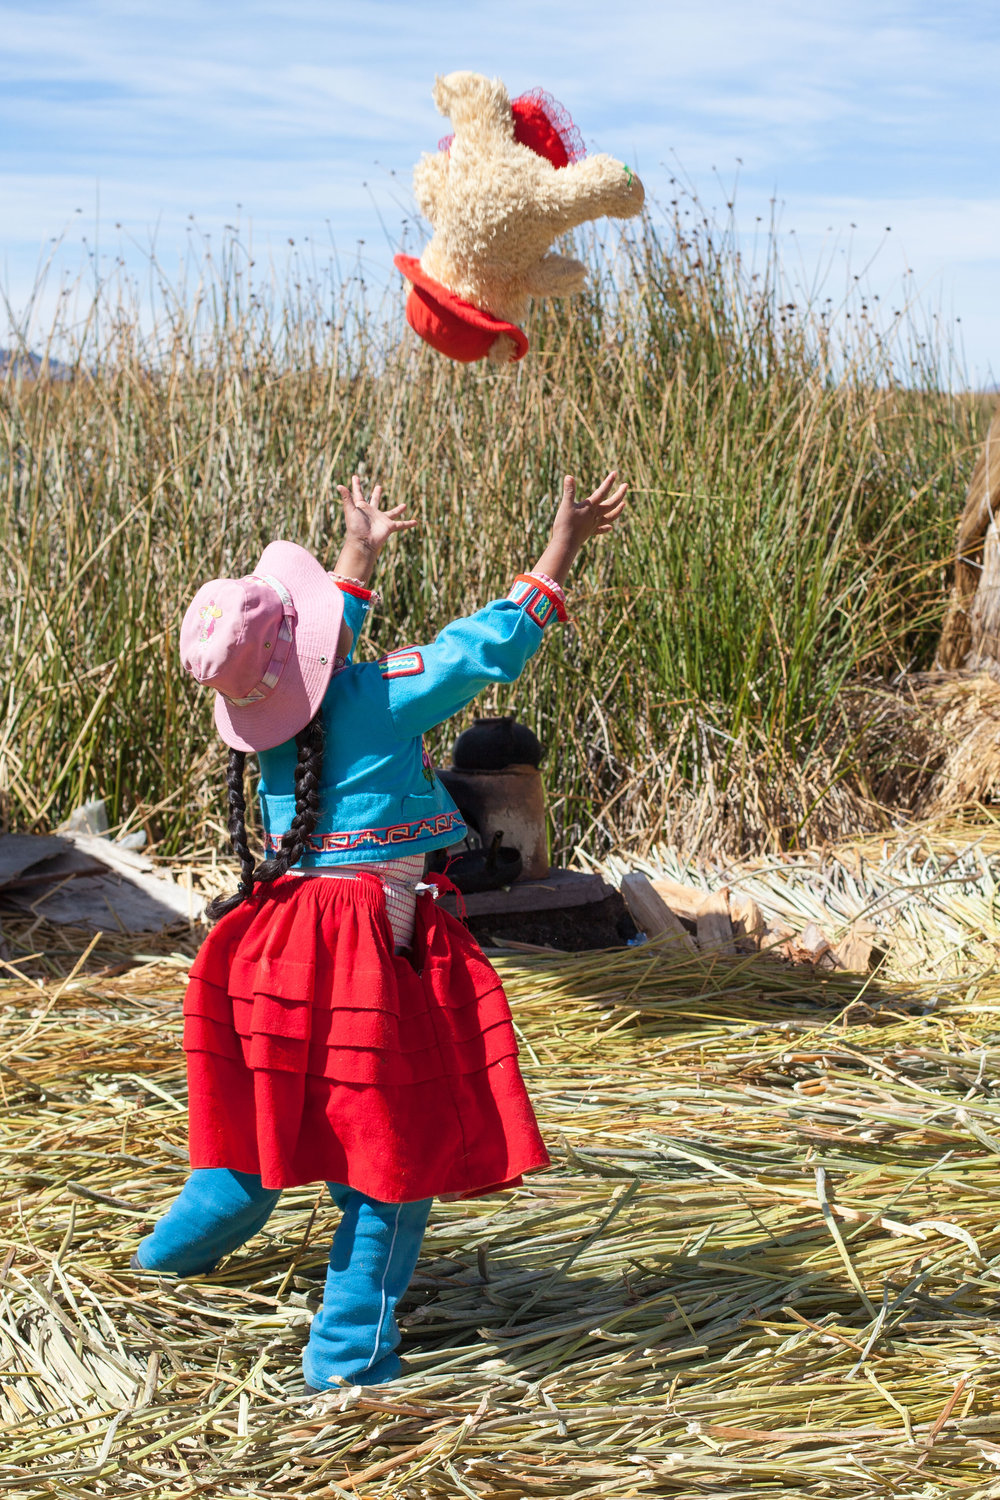 A Peruvian Child in colourful clothing plays on one of the floating reed islands on Lake Titicaca.